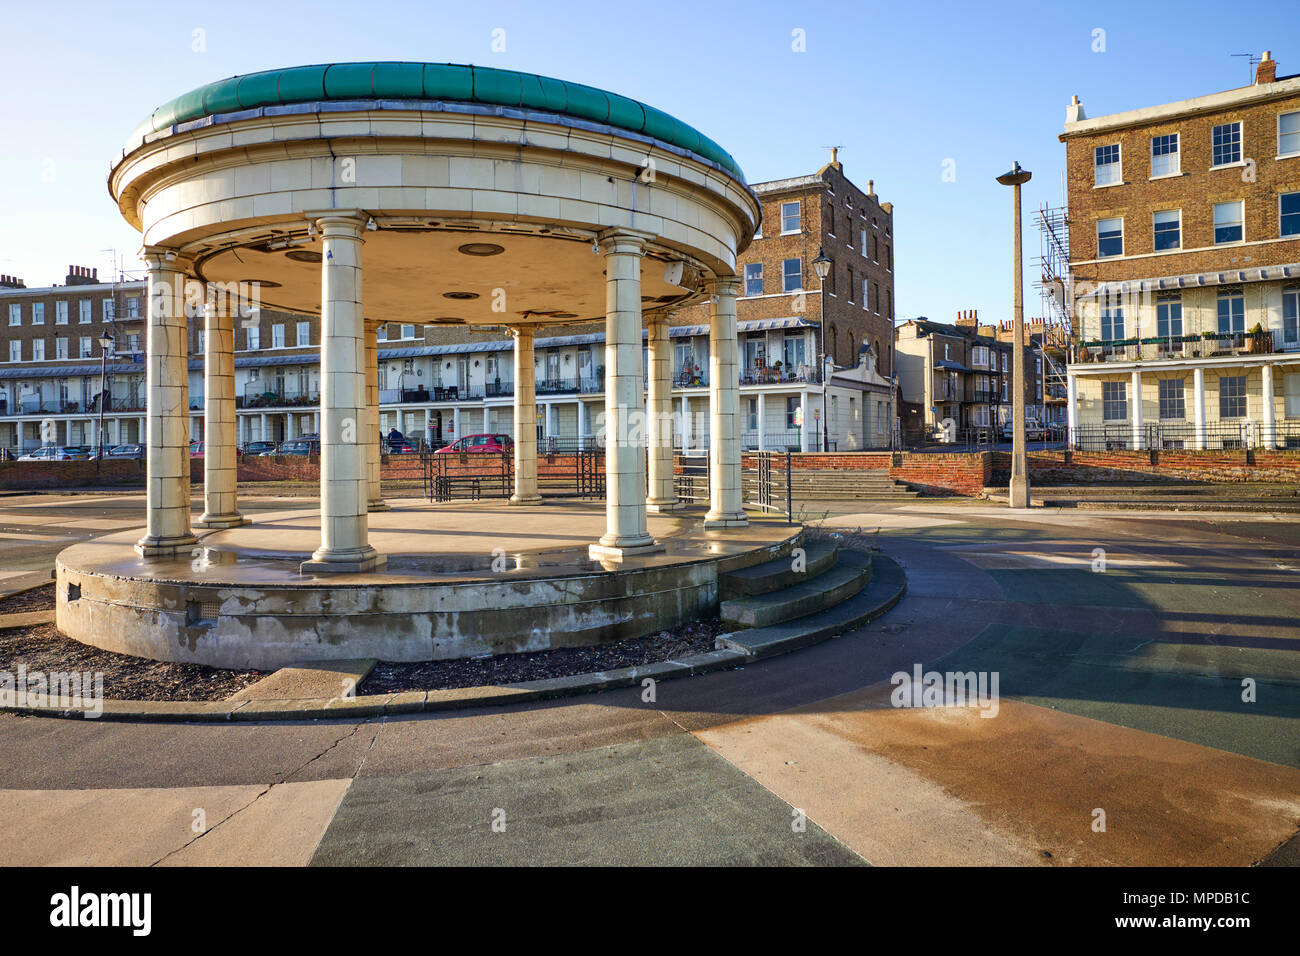 Bandstand and terraced Georgian houses in Ramsgate, Kent - Stock Image